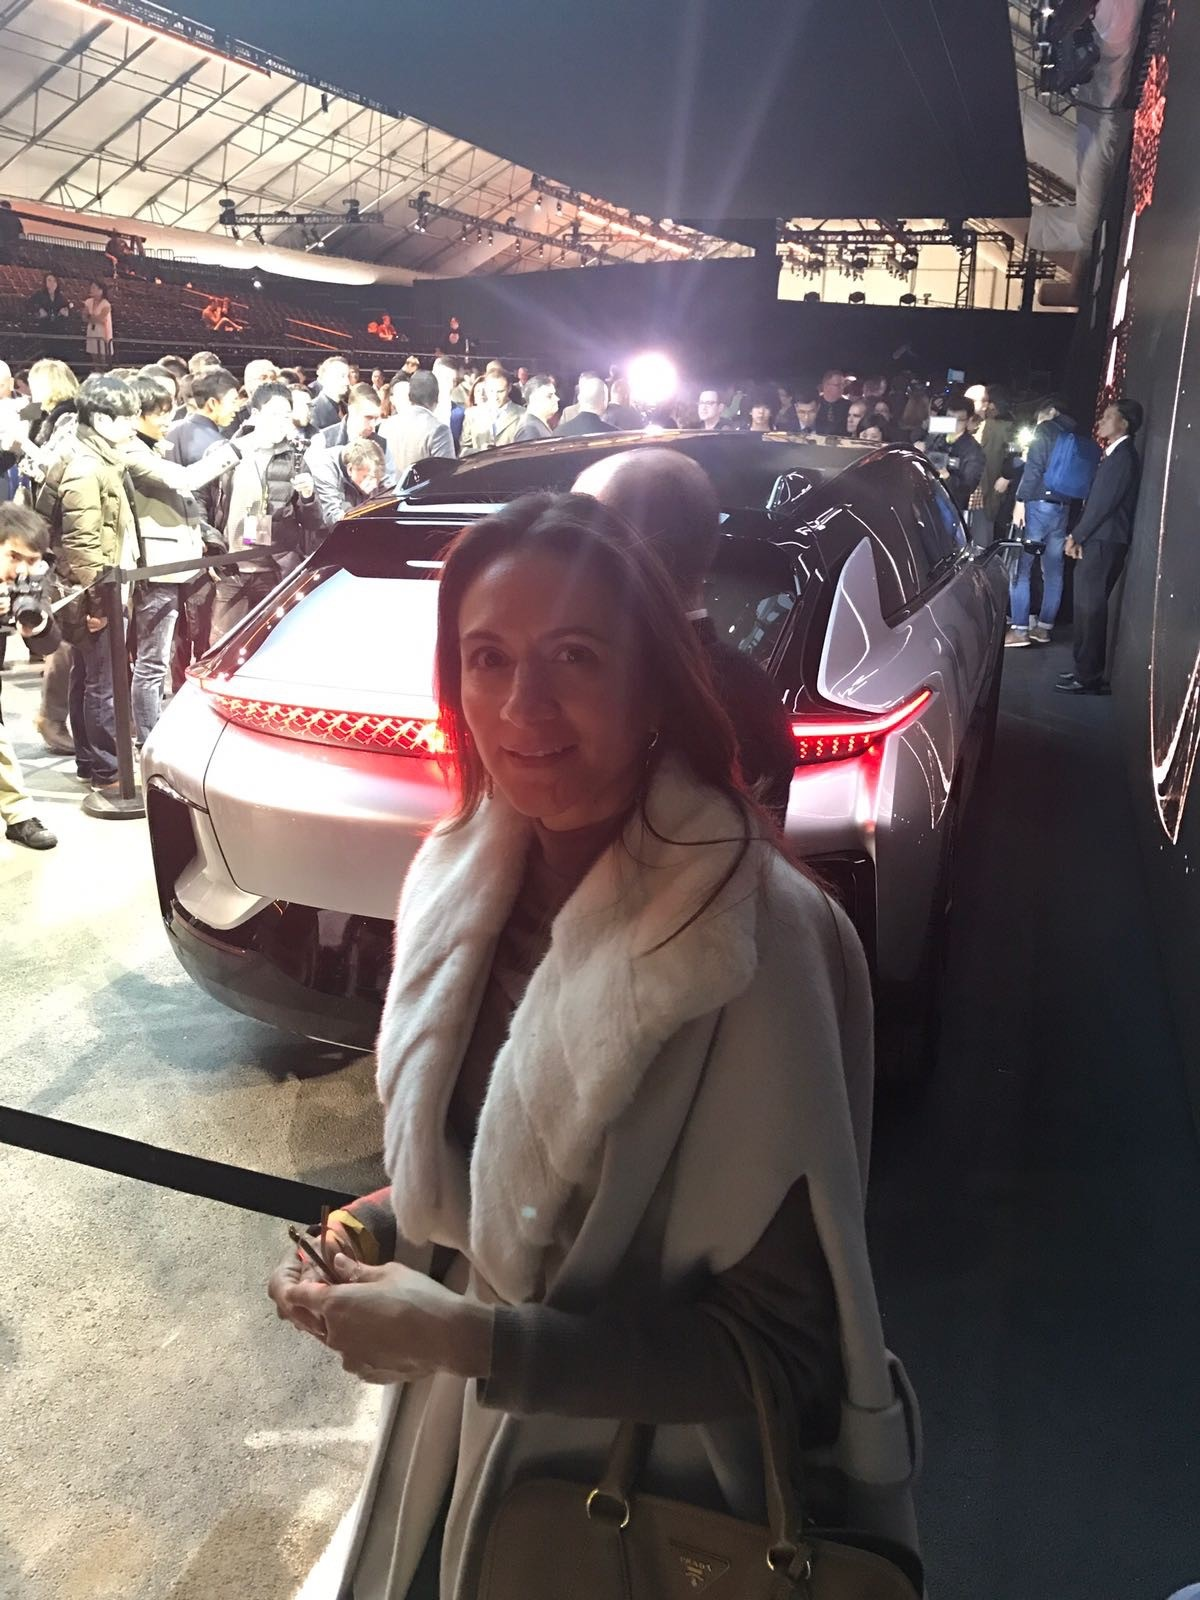 Vanessa Moriel, LIASE Group Managing Director Asia stands in front of the newly revealed FF 91 SUV at CES 2017 in Las Vegas. With the FF91, Faraday Future hopes to rival Tesla in the high-end all-electric car market.